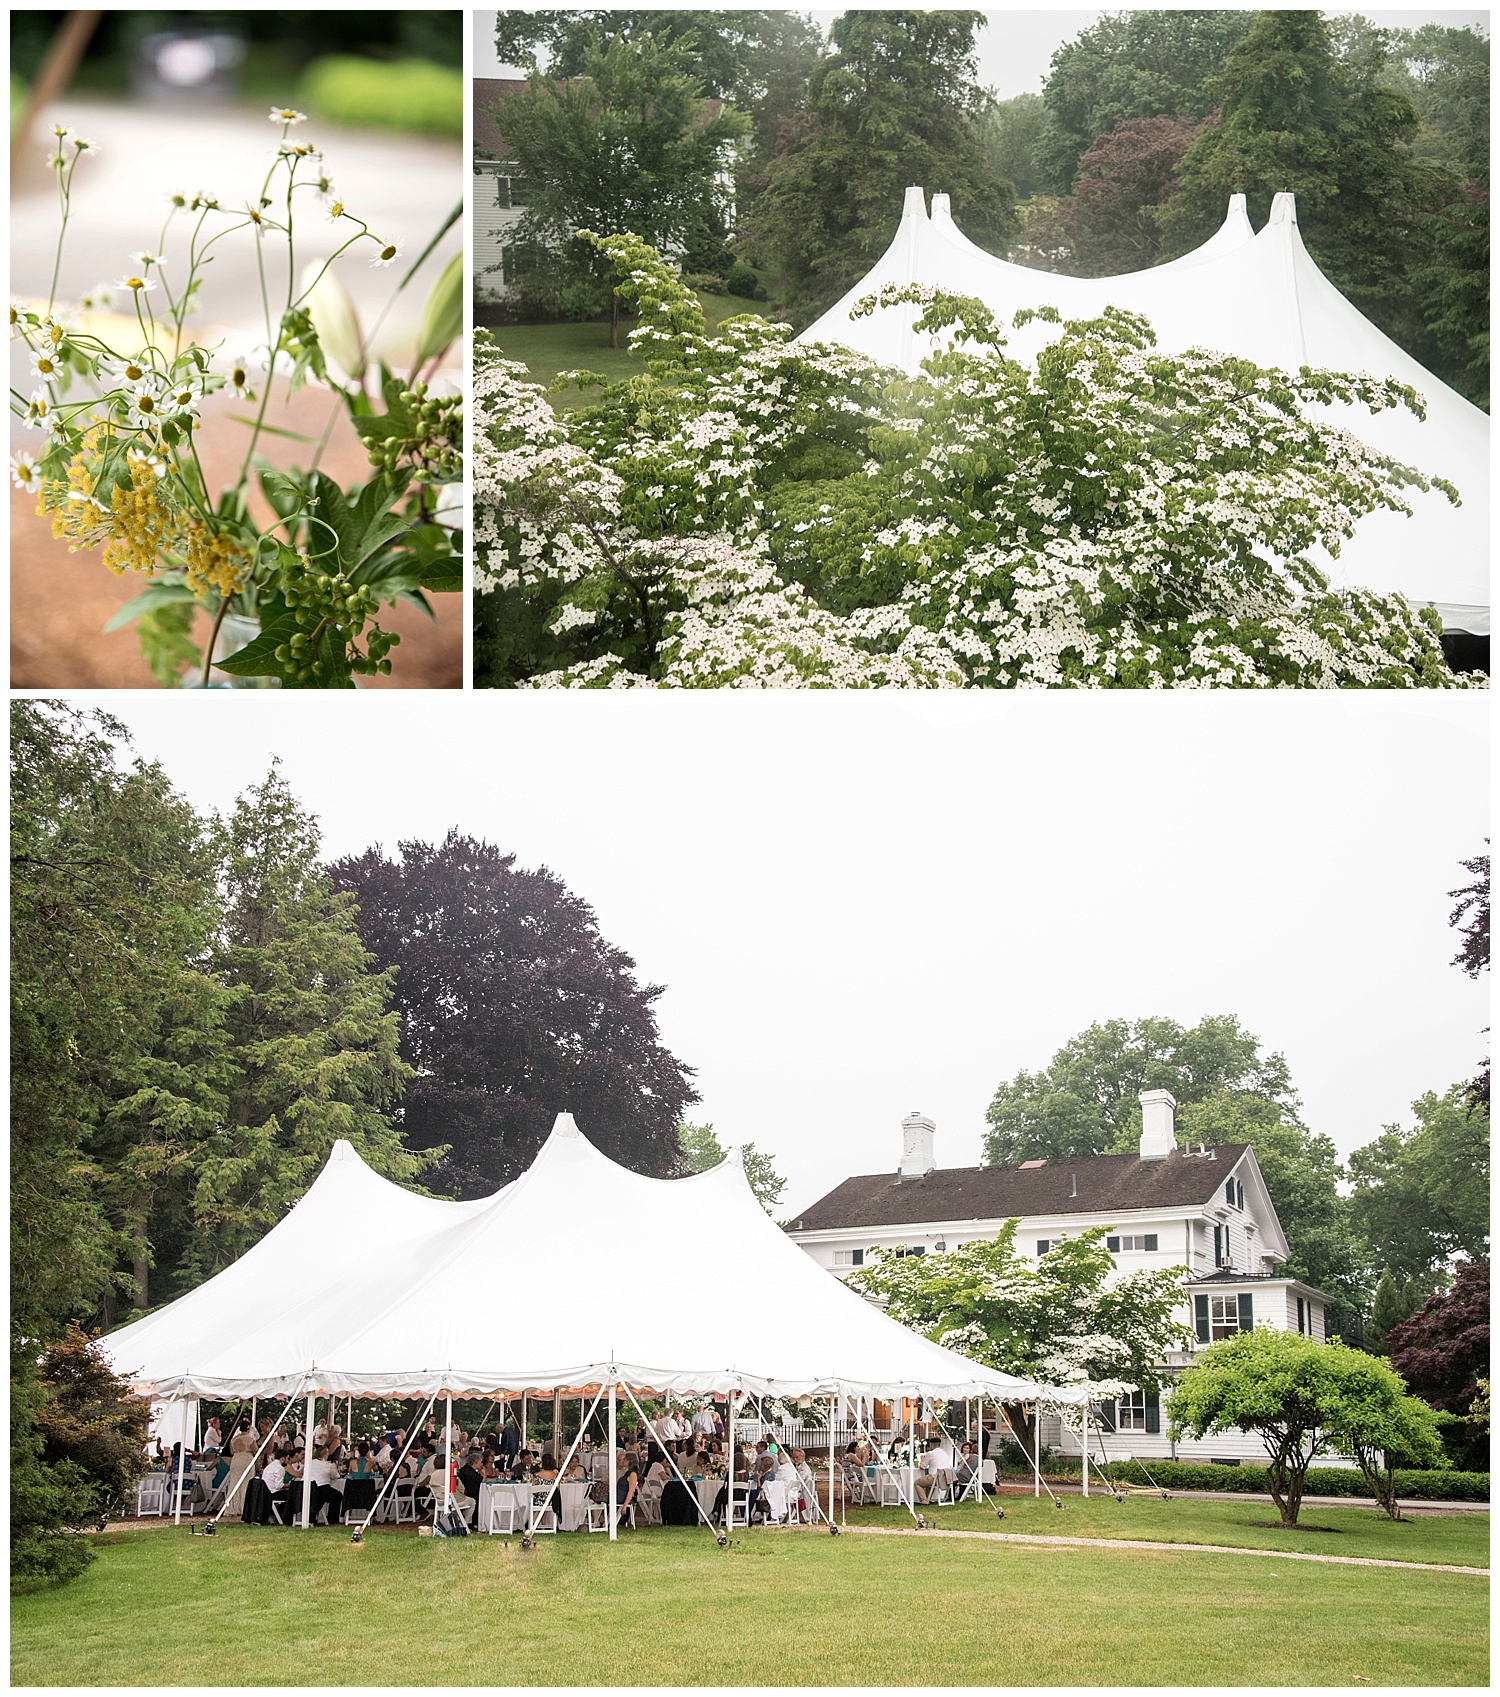 Homestead_Farm_Tent_Colonial_Connecticut_Wedding_Photographer_Burr_Mansion_Erny_Photo_CO_050Outdoor_Tent_Party_Reception_EventApollo_Photojournalism_Wedding_Writer_Heather_Erny013.jpg